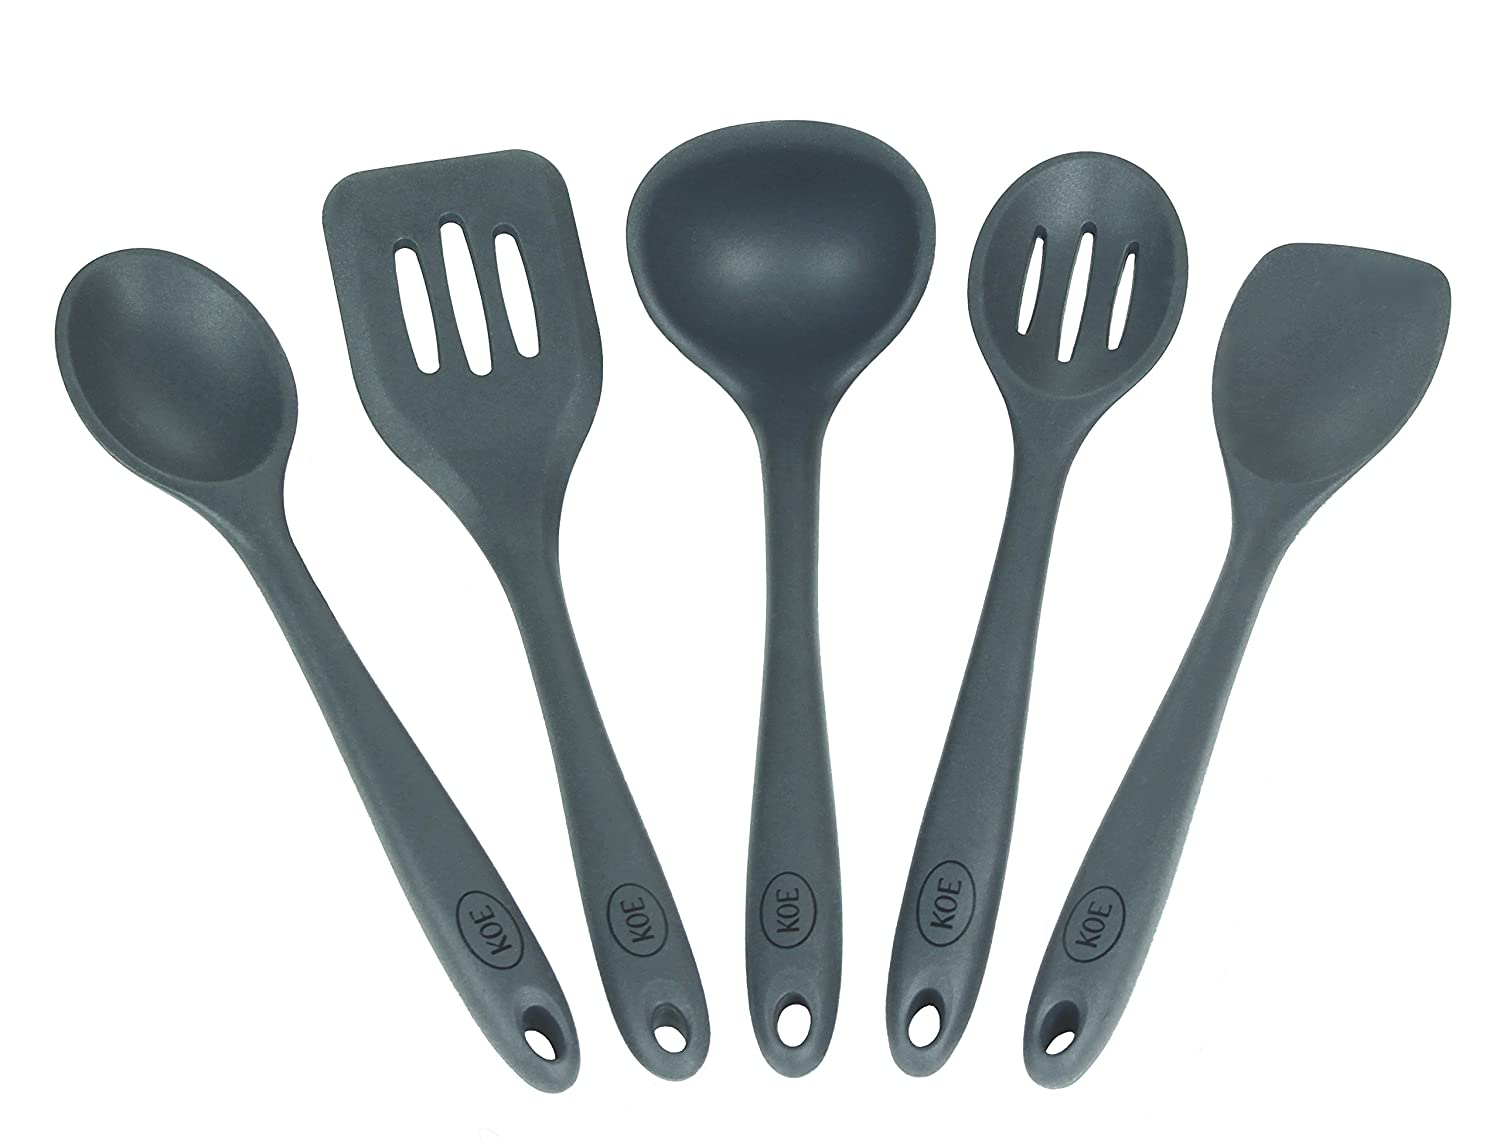 Amazon.com: Koe Premium 5 Piece Silicone Kitchen Utensil Set, Non ...